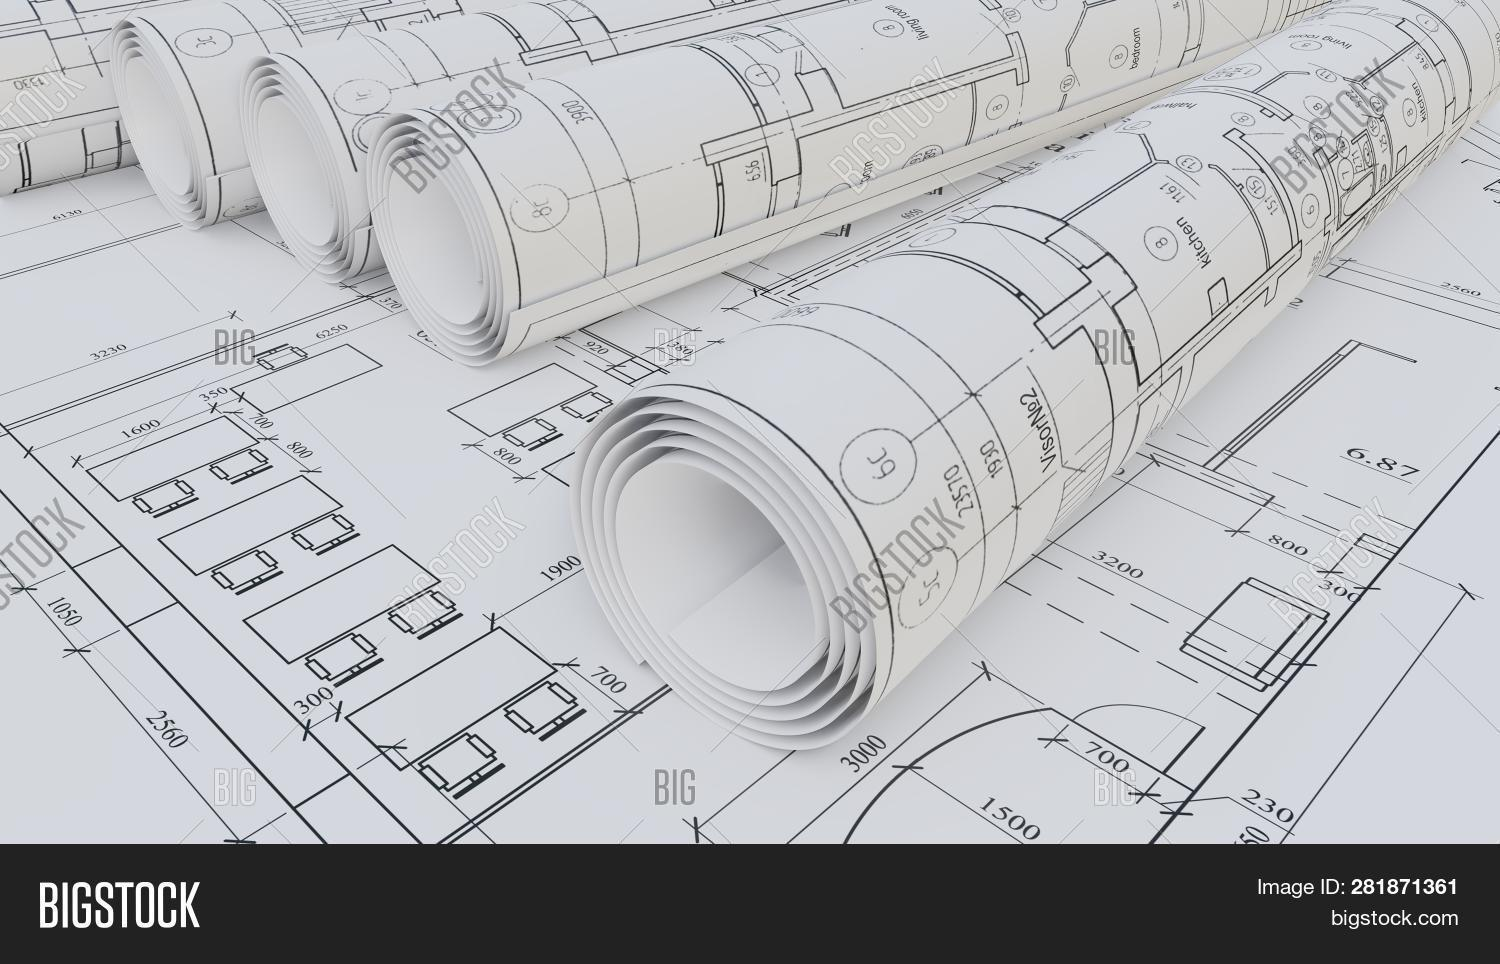 Architectural Drawings Image & Photo (Free Trial) | Bigstock